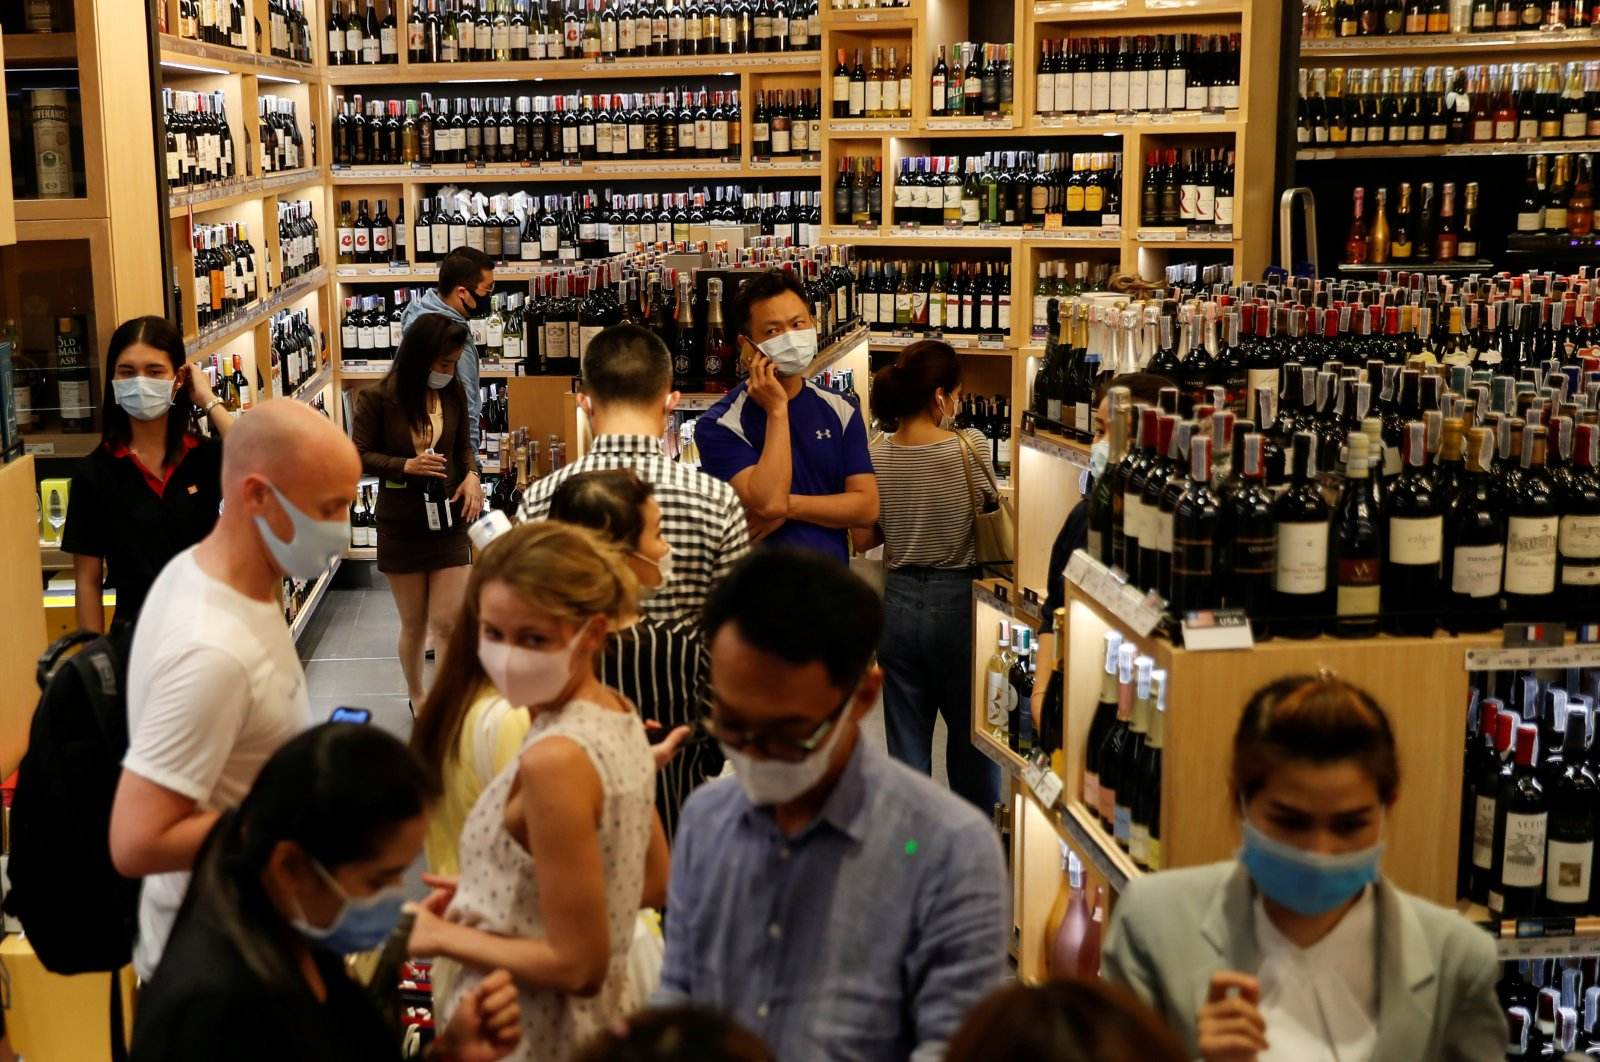 People line up inside a liquor shop after Bangkok and several other provinces announced a 10-day ban on alcohol sale starting April 10 during the coronavirus outbreak in Bangkok, Thailand, April 9, 2020. (Reuters Photo)